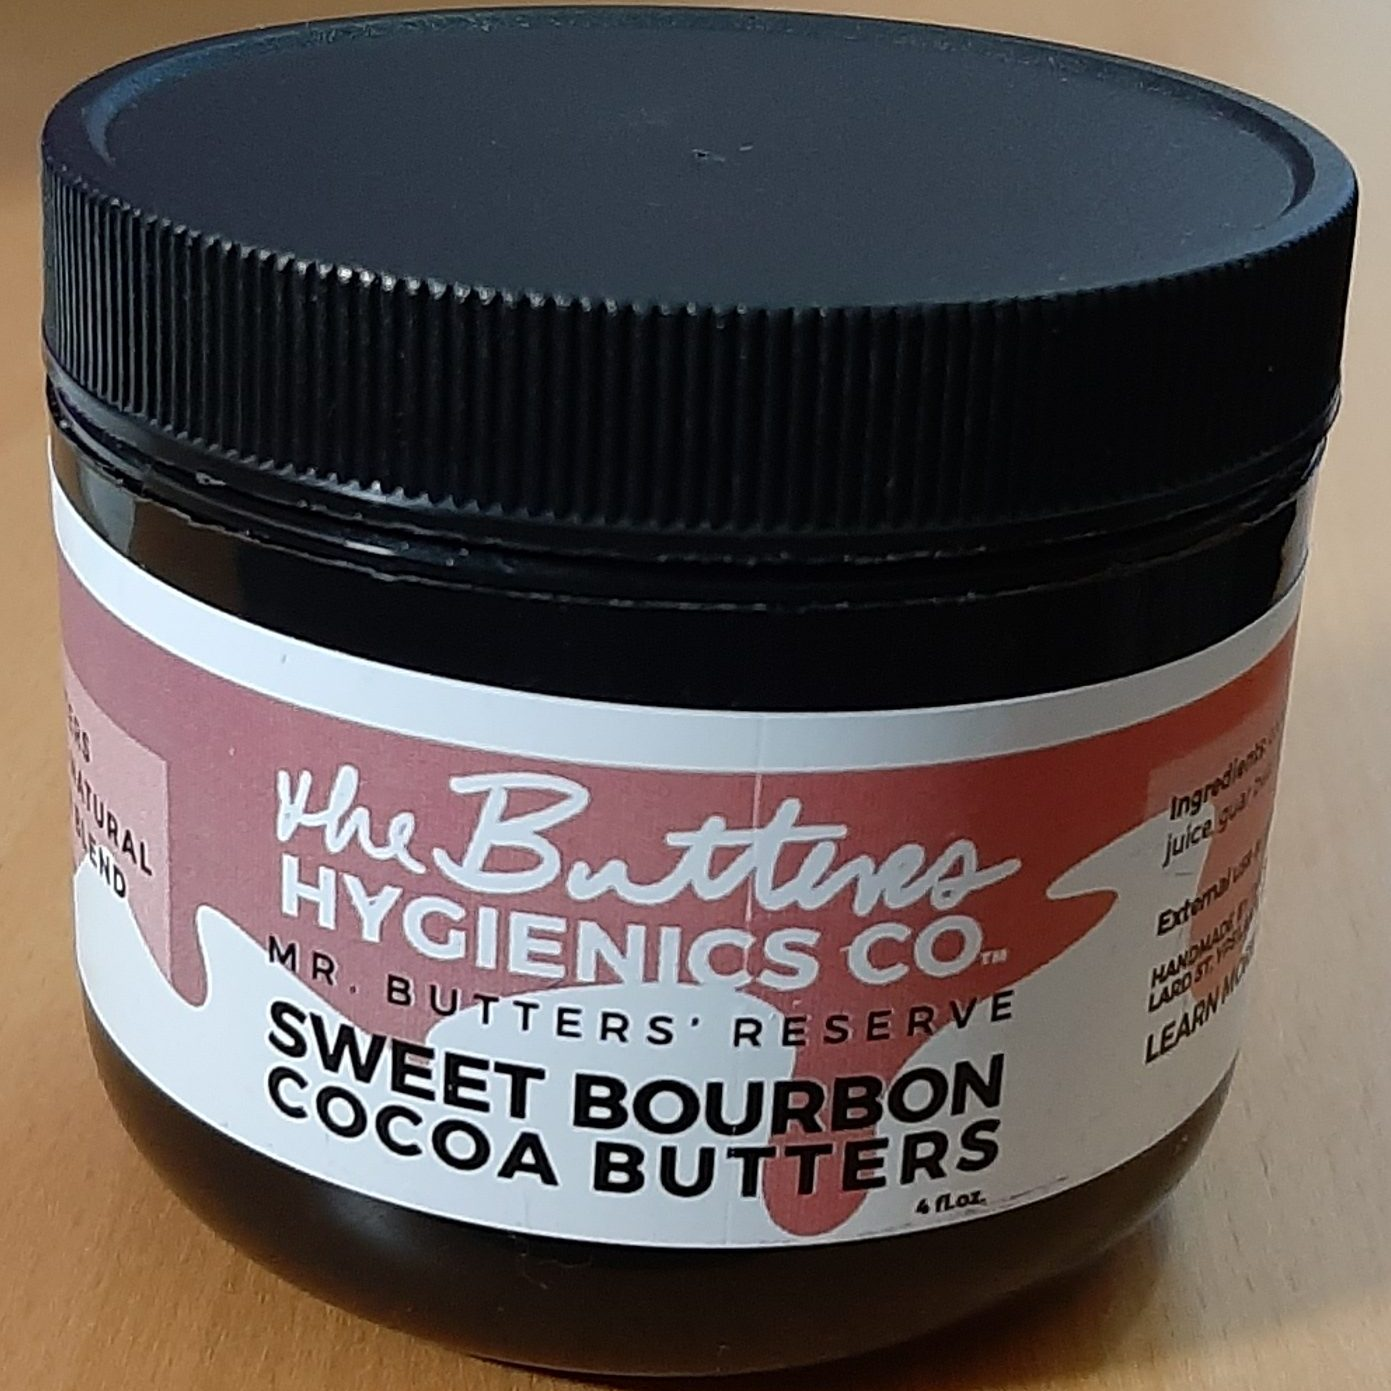 The Butters Hygienics Co Sweet Bourbon Cocoa Butters moisturiser